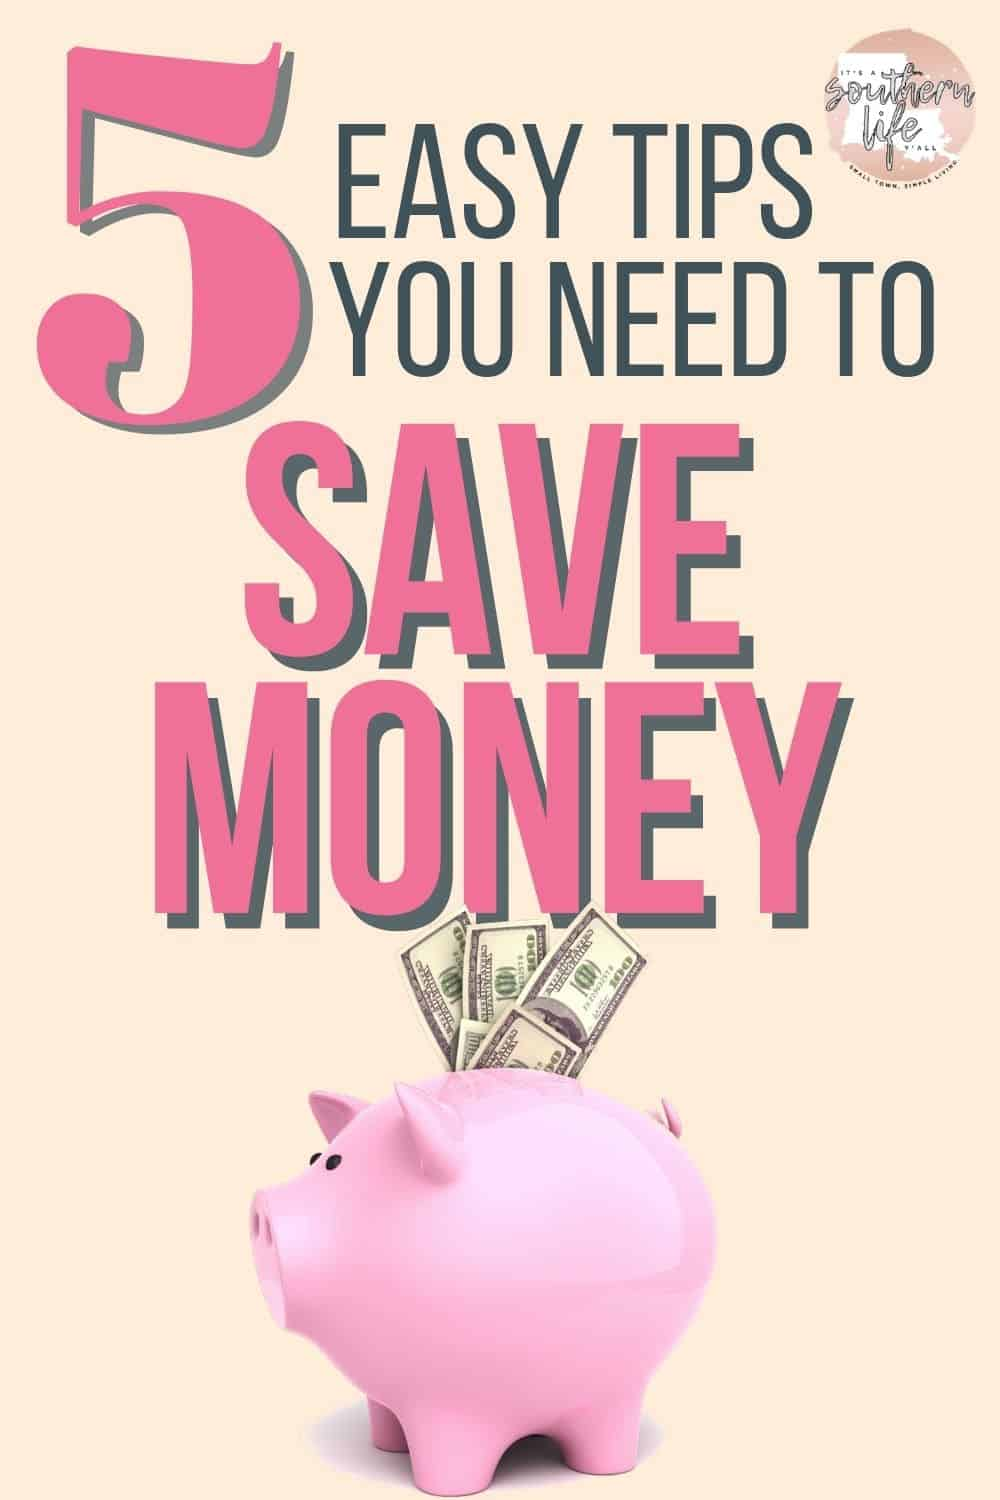 Piggy bank with cash includes 5 easy tips you need to save money text overlay